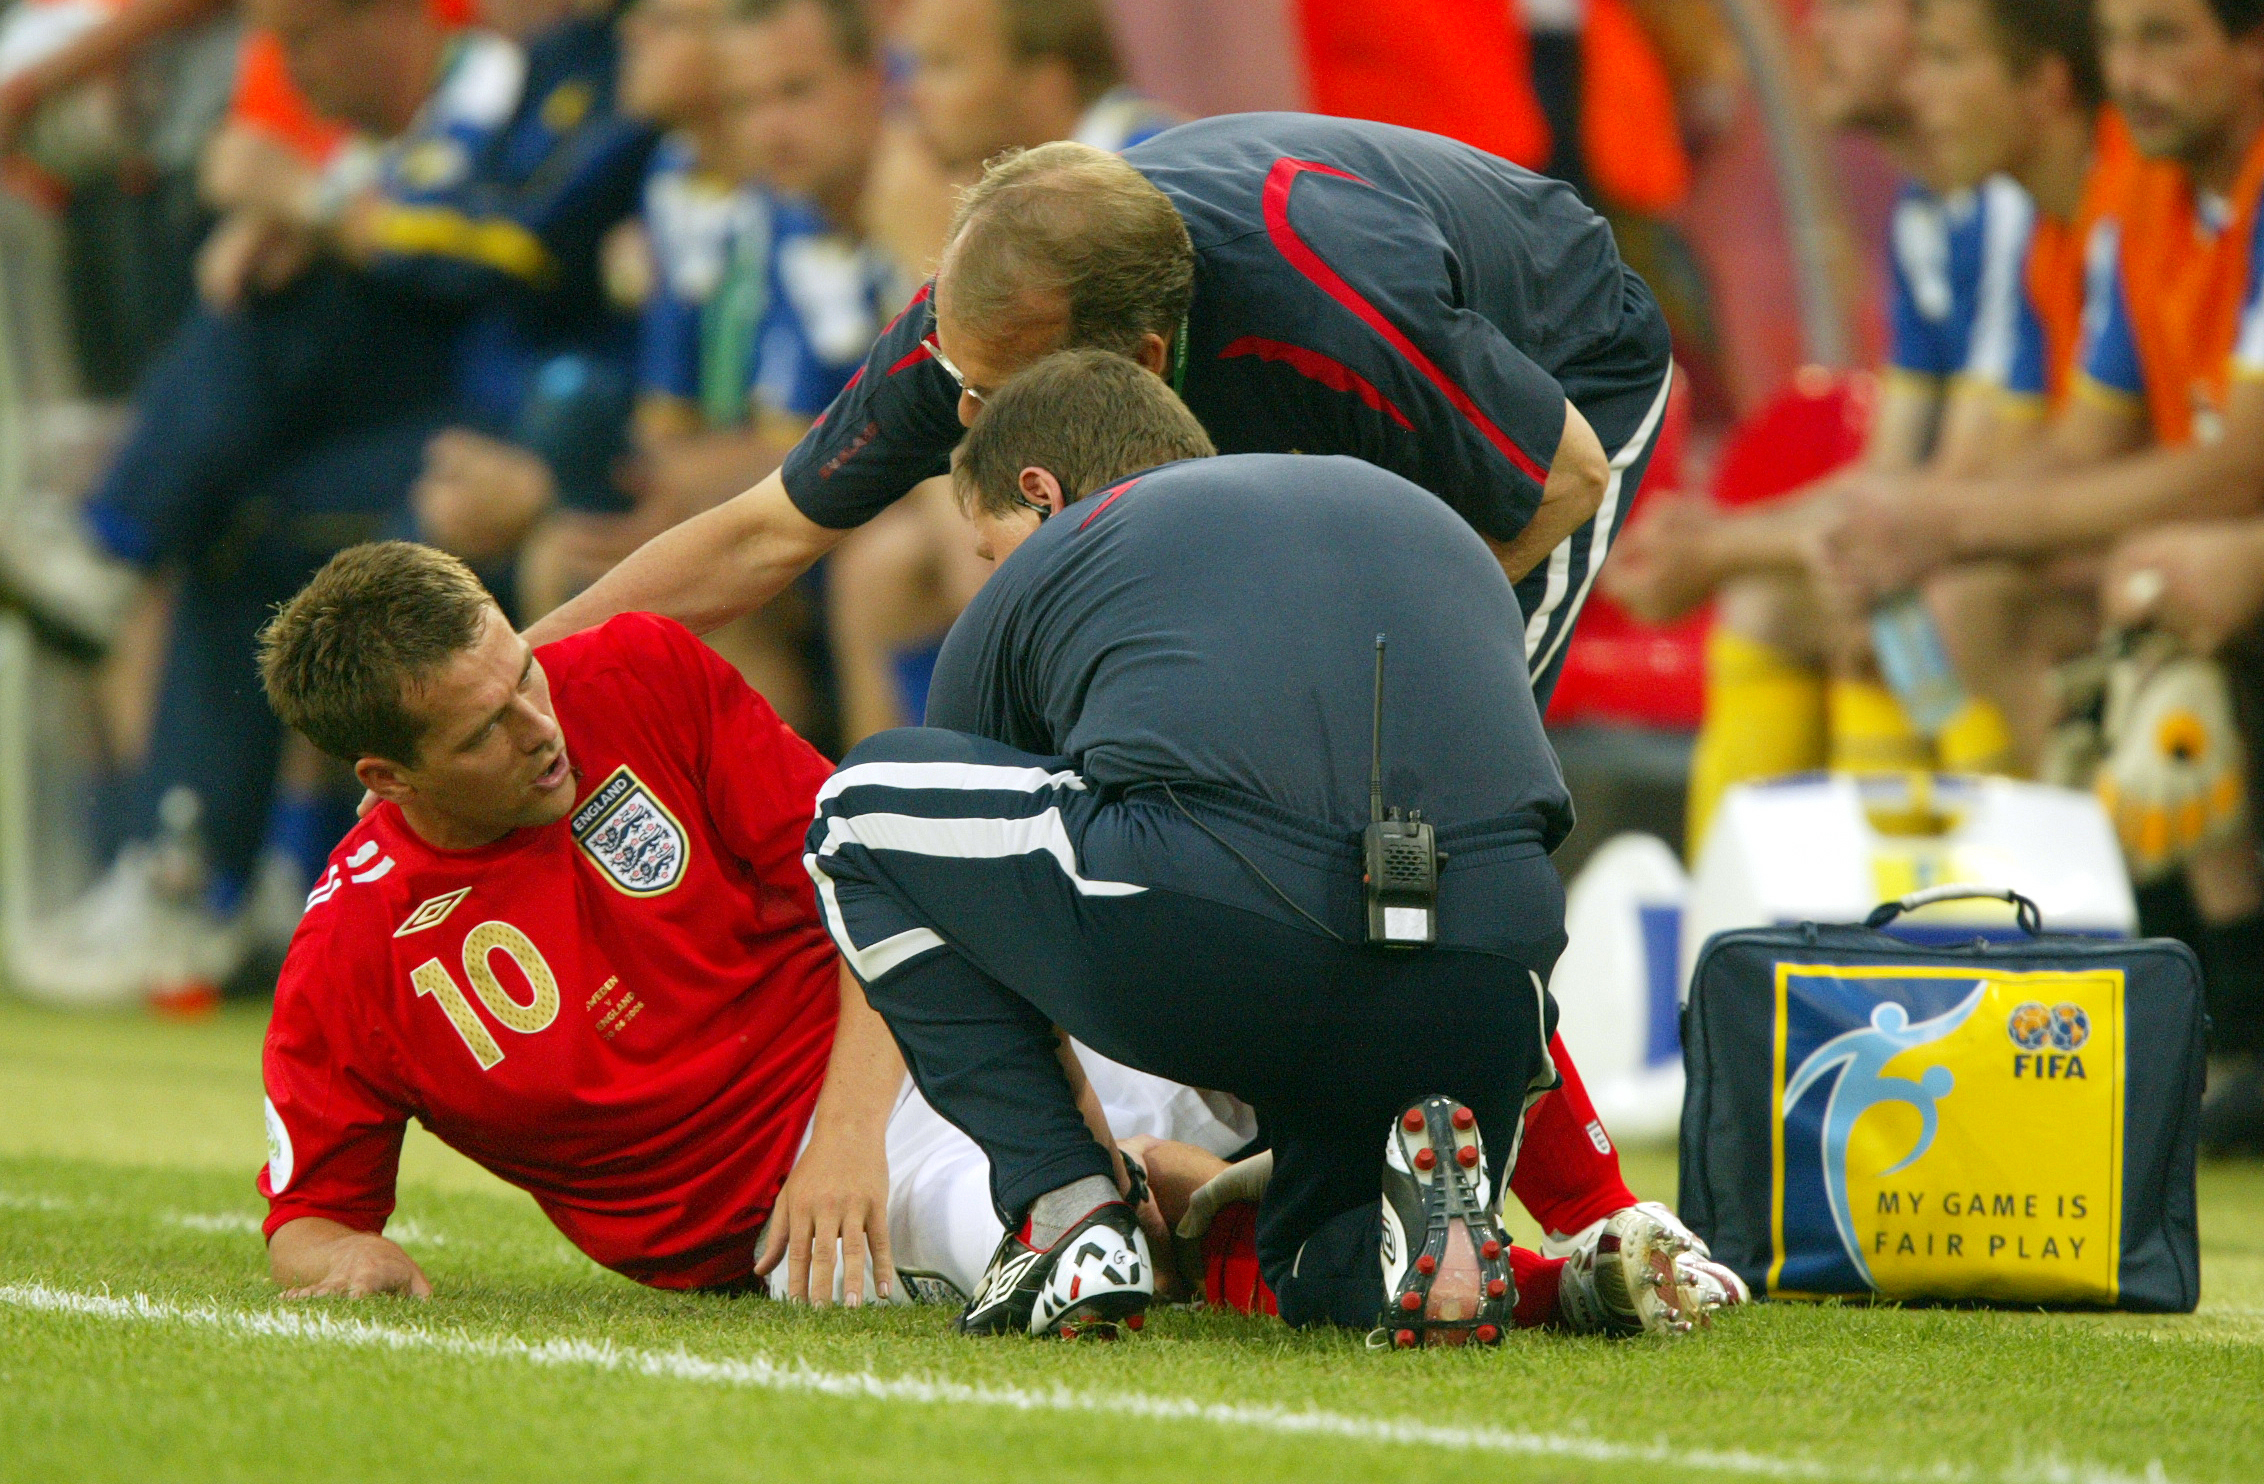 Michael Owen receives treatment for an injury at the 2006 World Cup